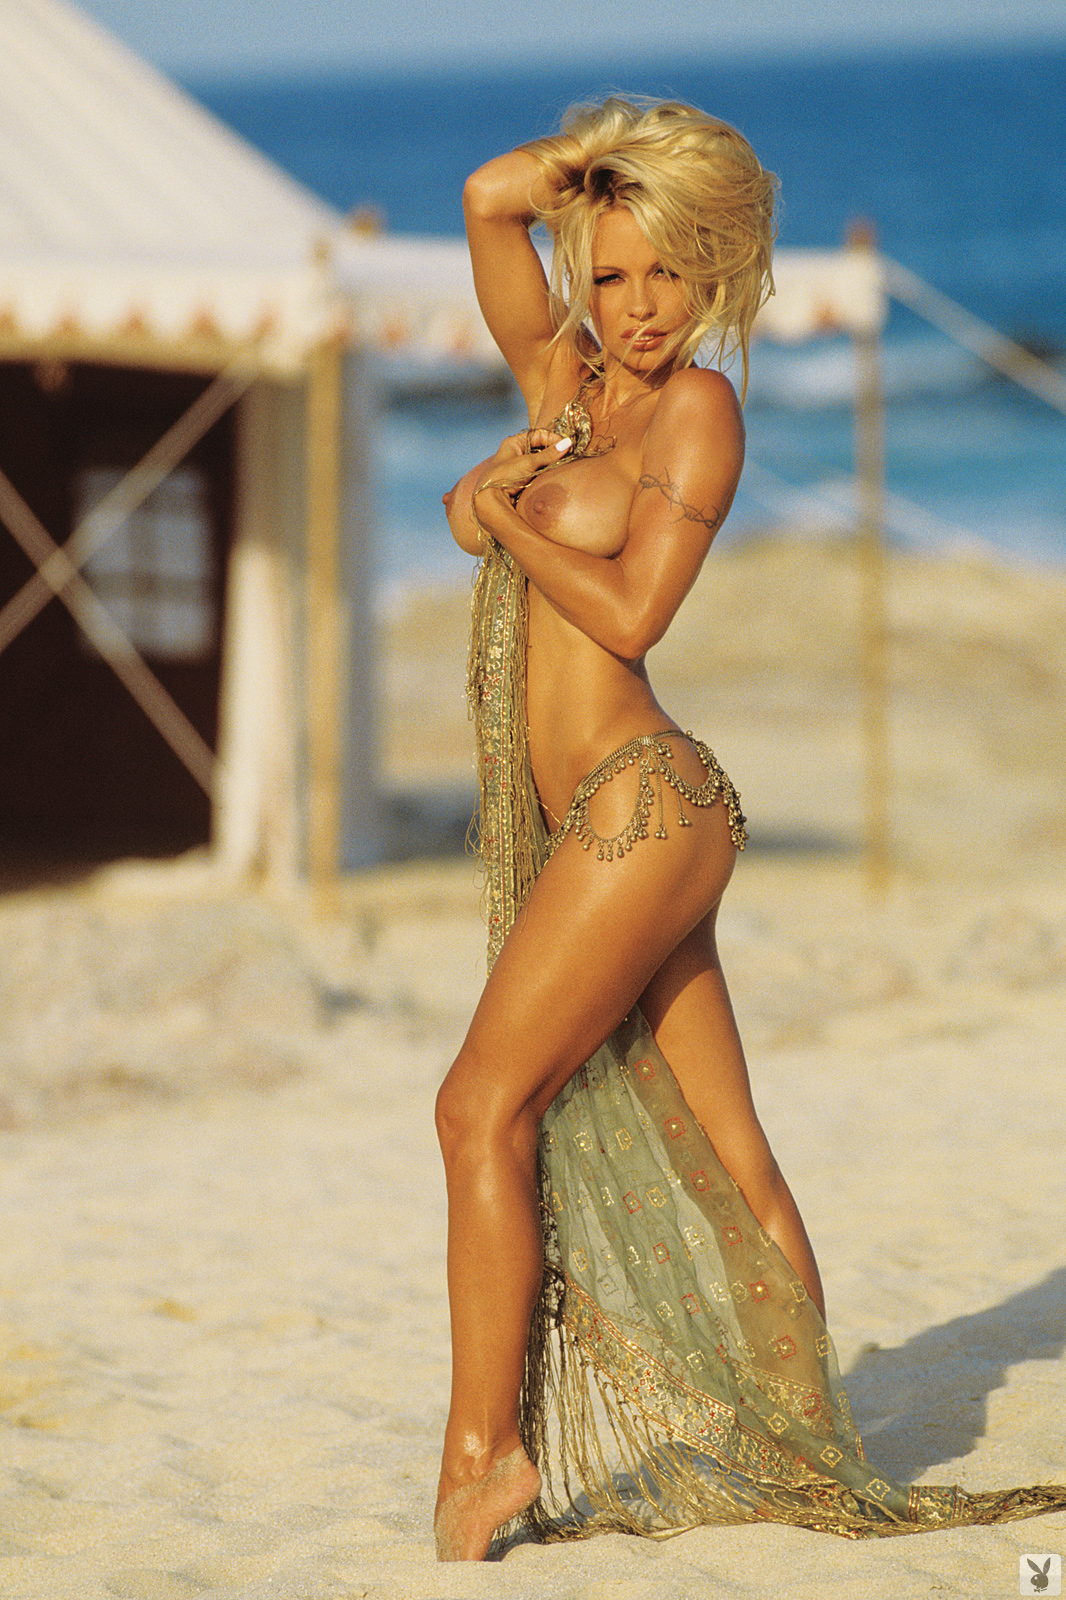 Opinion Pamela anderson on nude beach that can